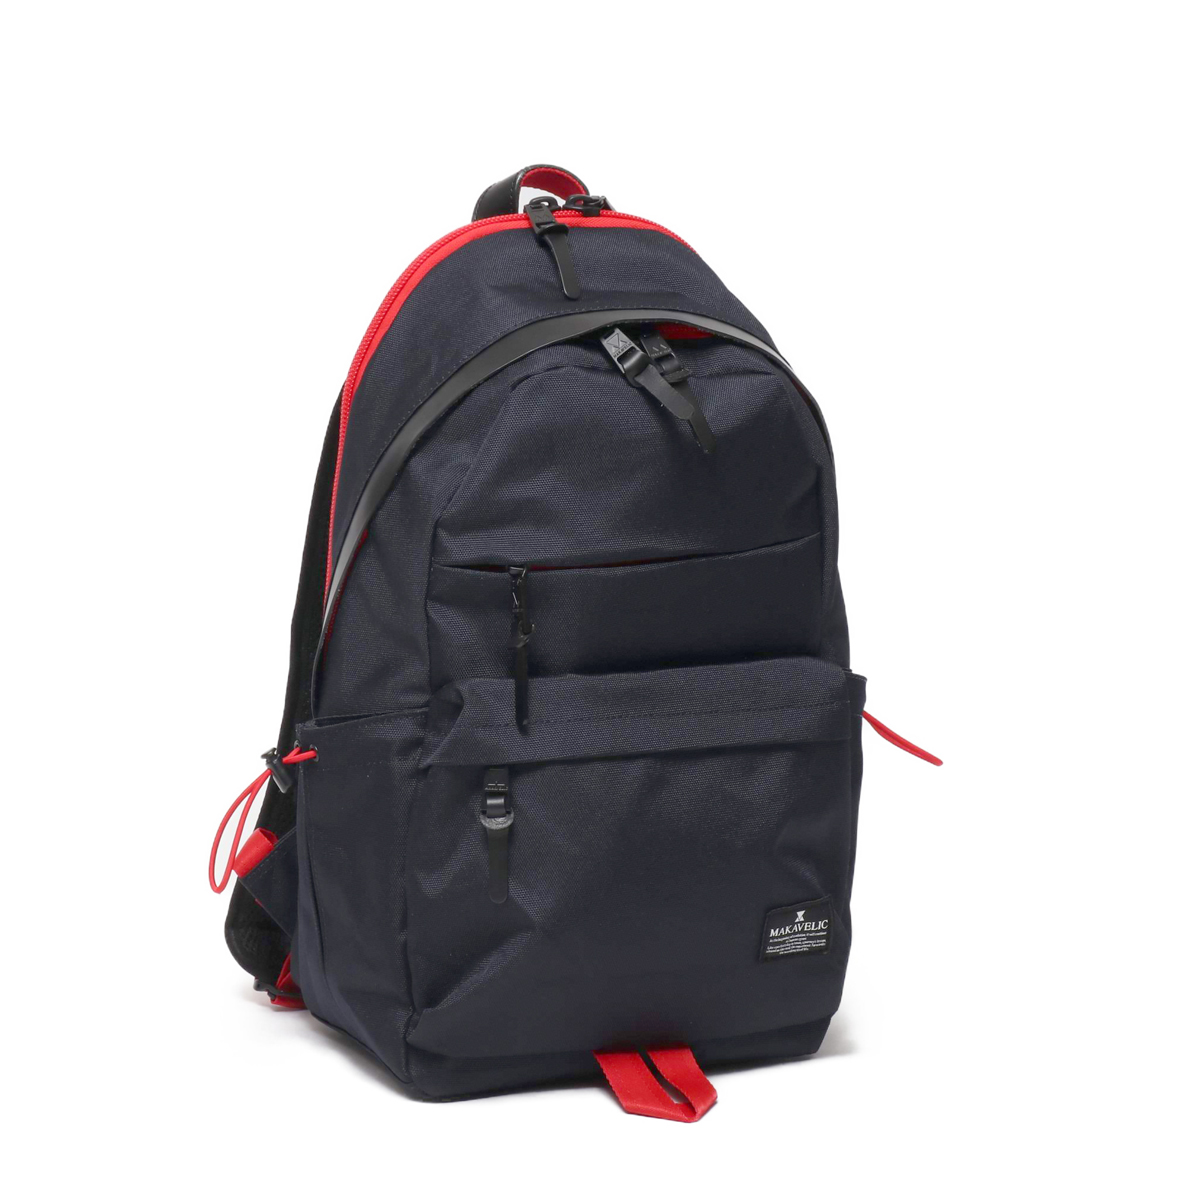 MAKAVELIC SHUTTLE DAYPACK(マキャベリック シャトル デイパック)D.NAVY/RED【メンズ バックパック】19FA-I